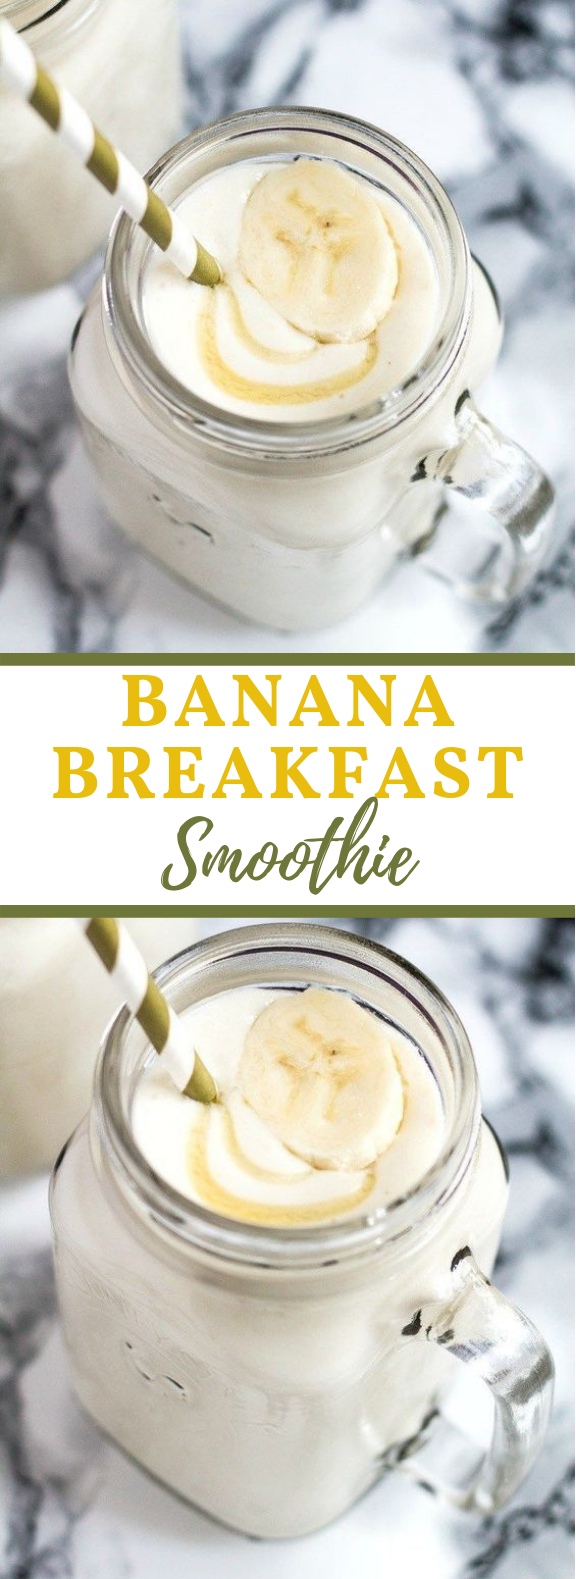 BANANA BREAKFAST SMOOTHIE #Smoothie #Drink